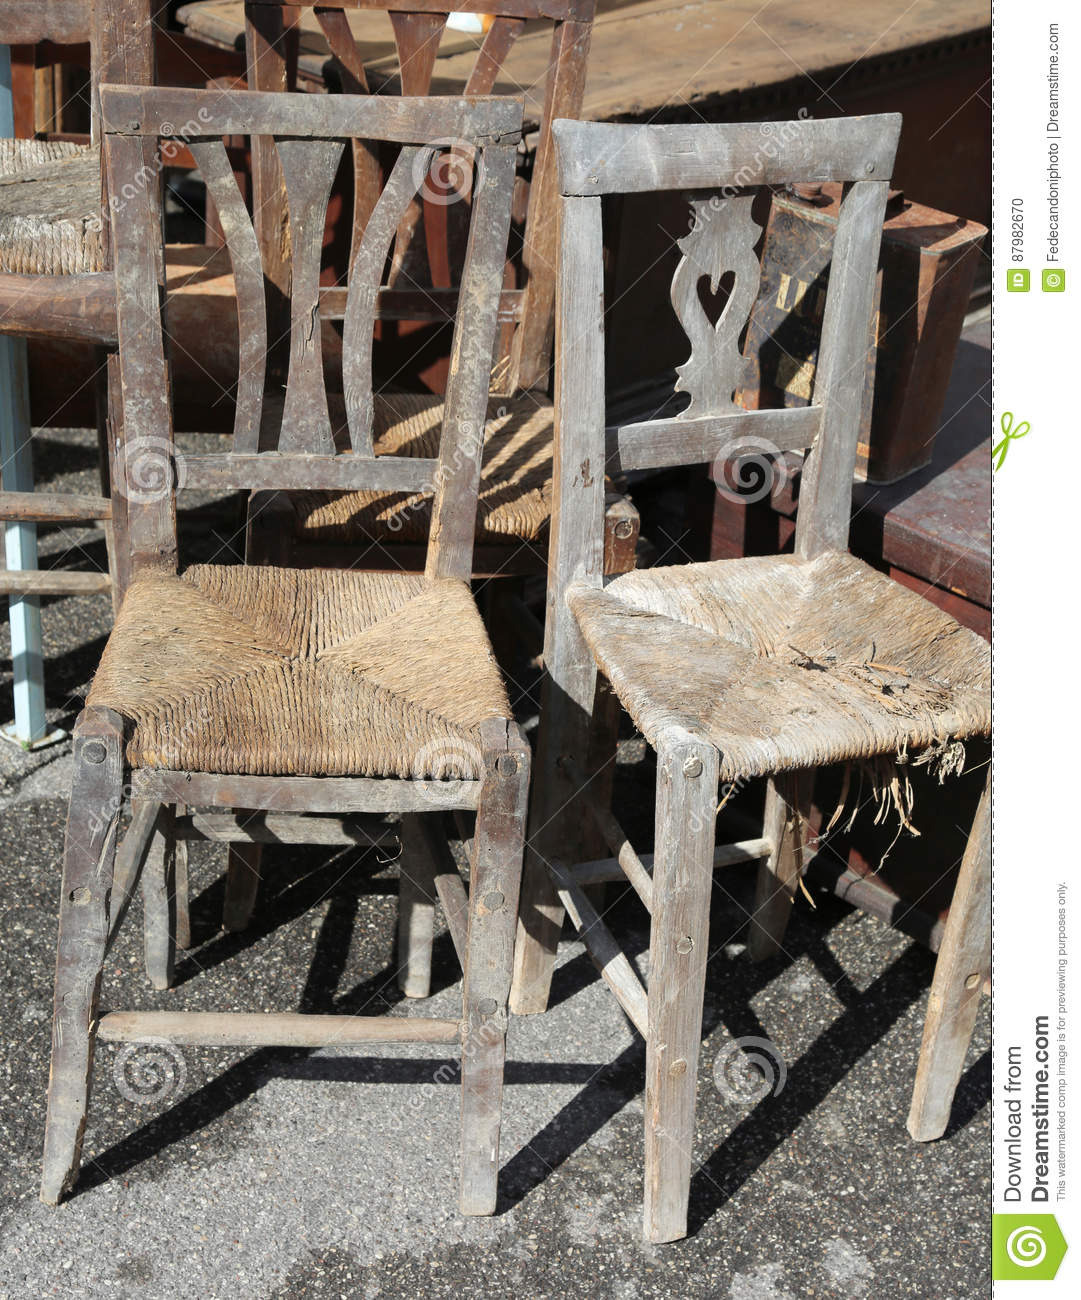 Antique Wicker Furniture for Sale Luxury Wicker Chairs for Sale In the Outdoor Antiques Market Stock